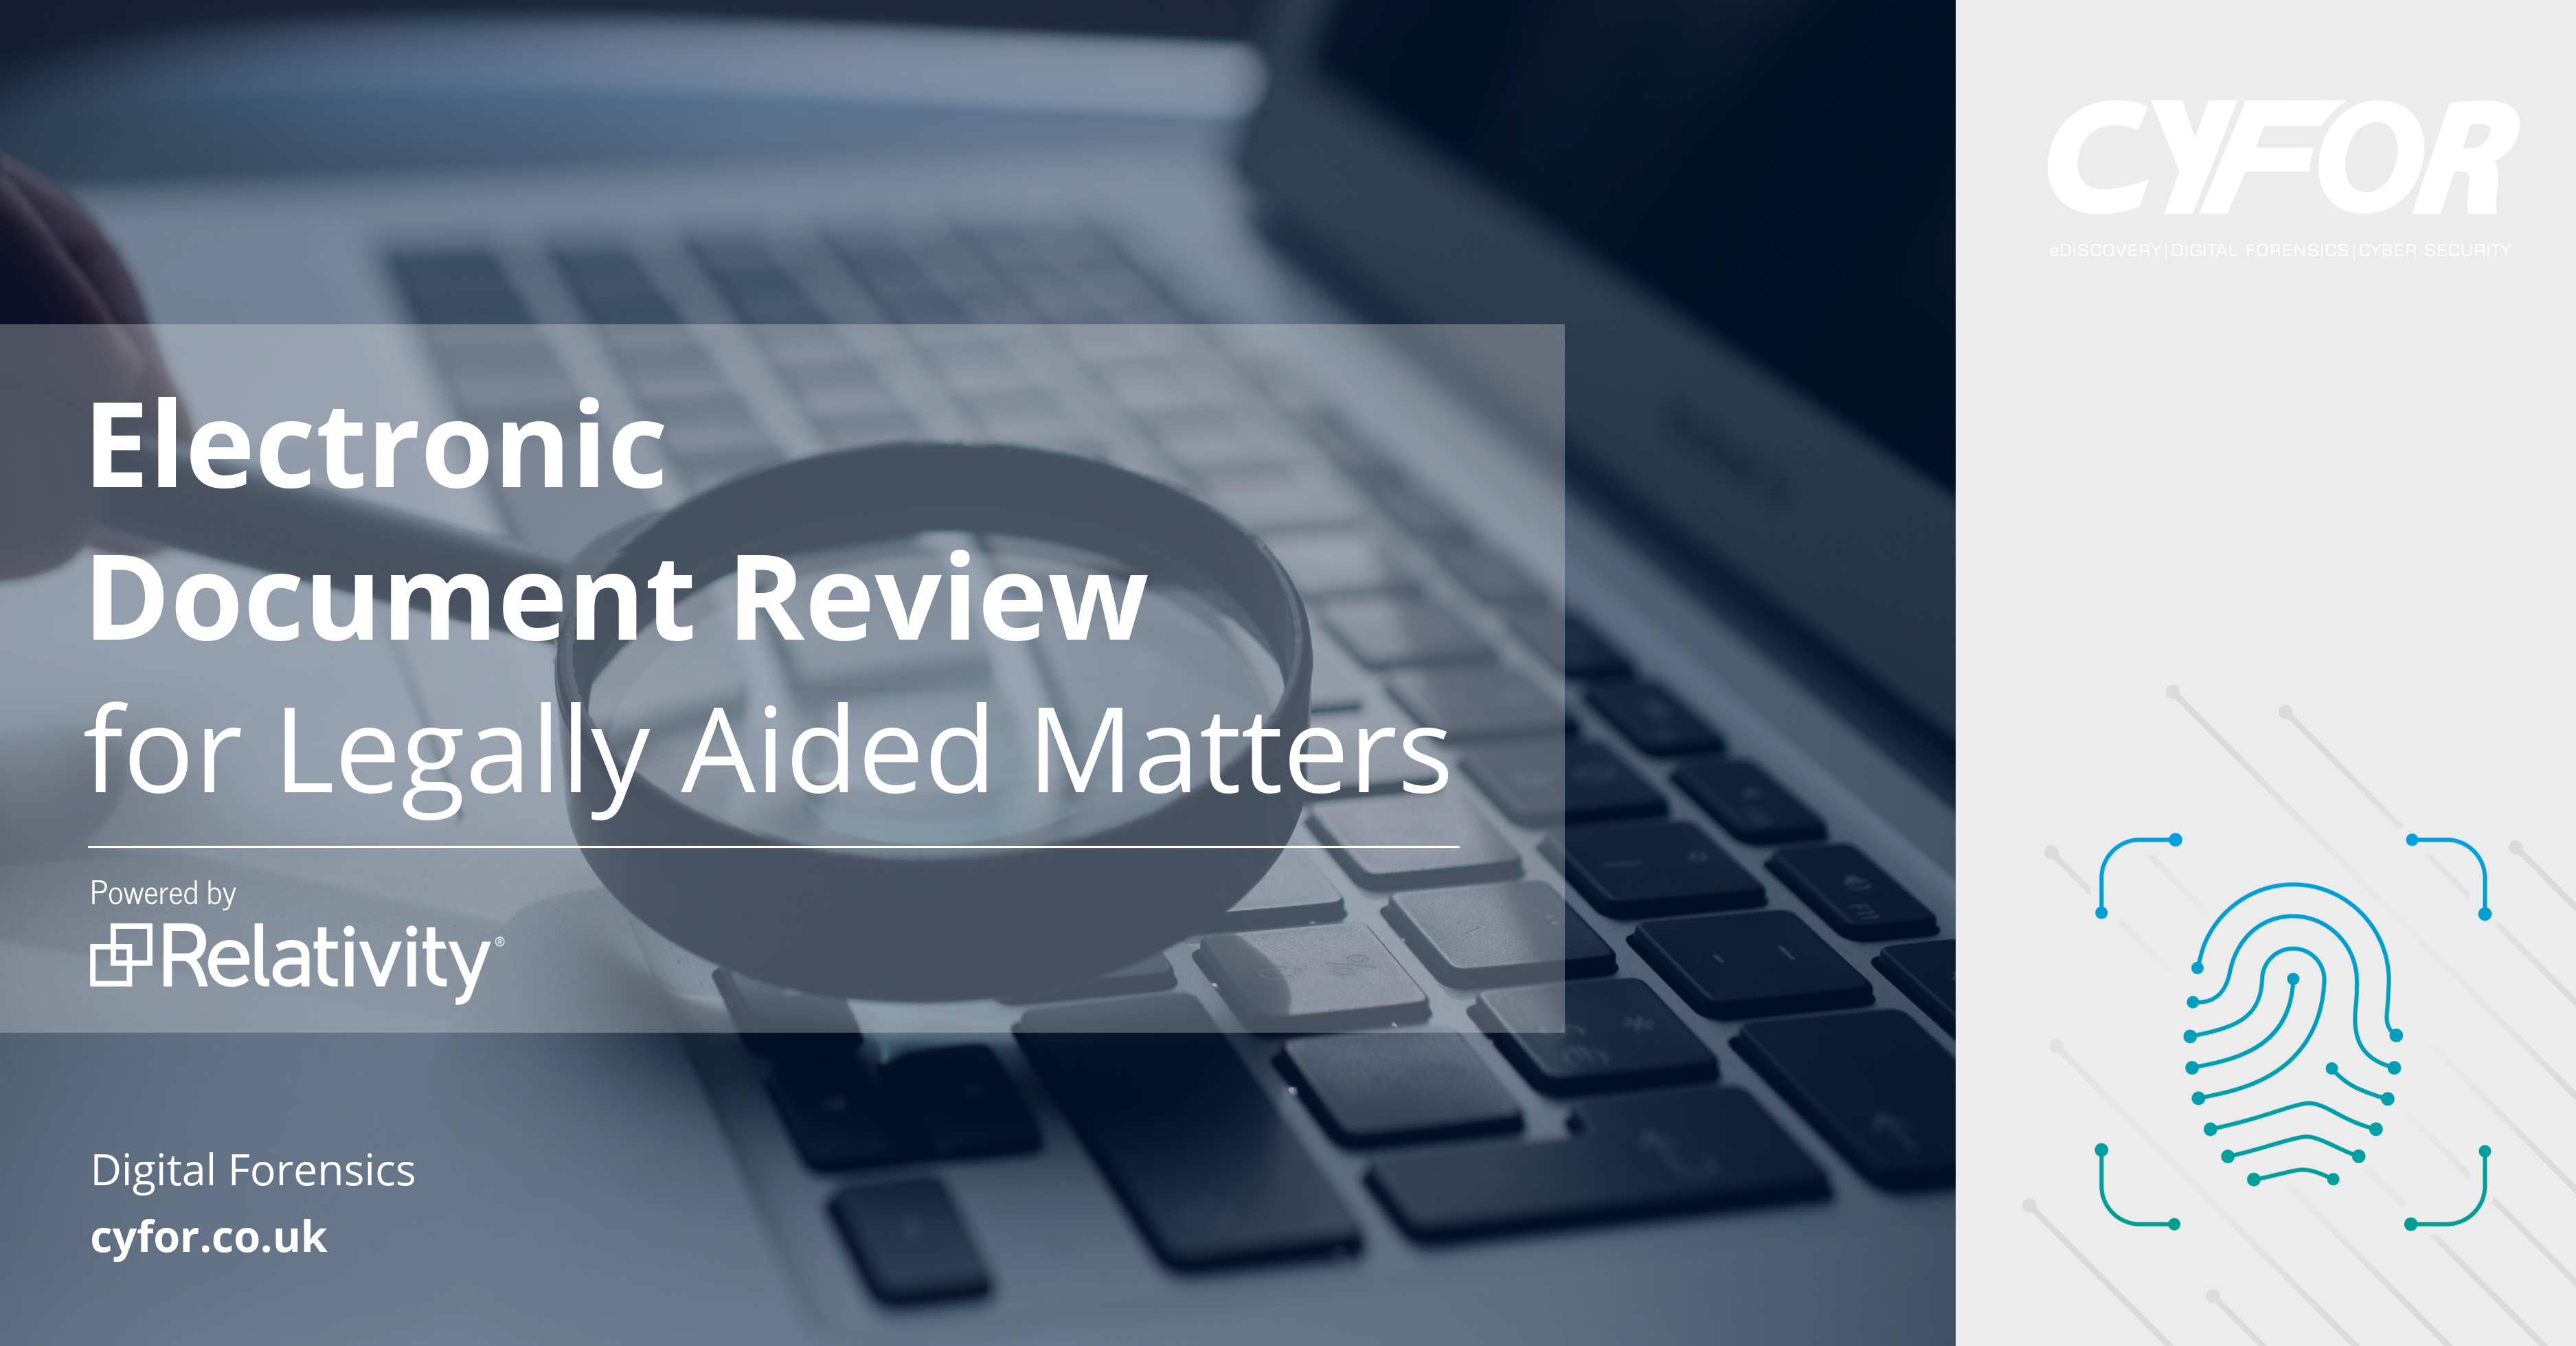 Electronic Document Review for Legally Aided Matters